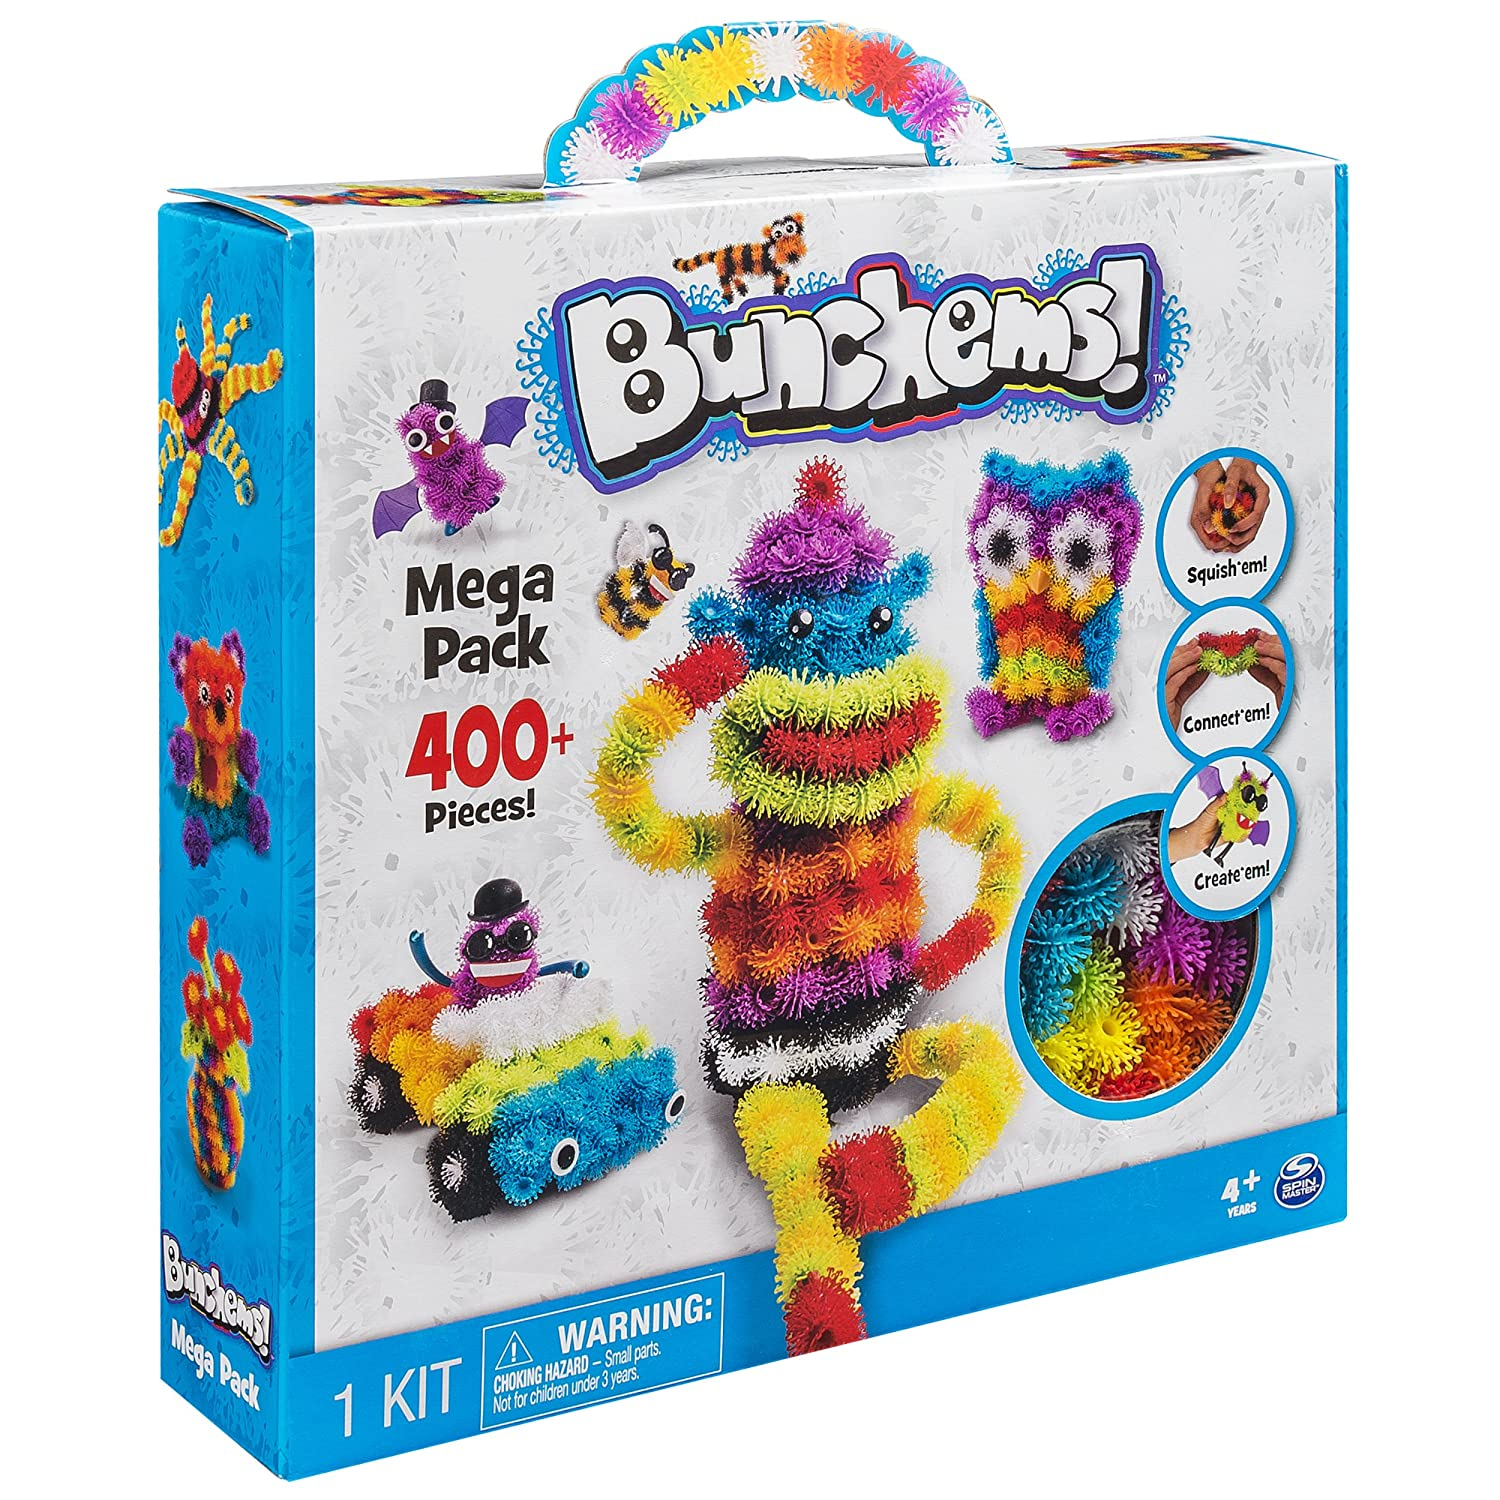 Bunchems - New Creative Building Blocks